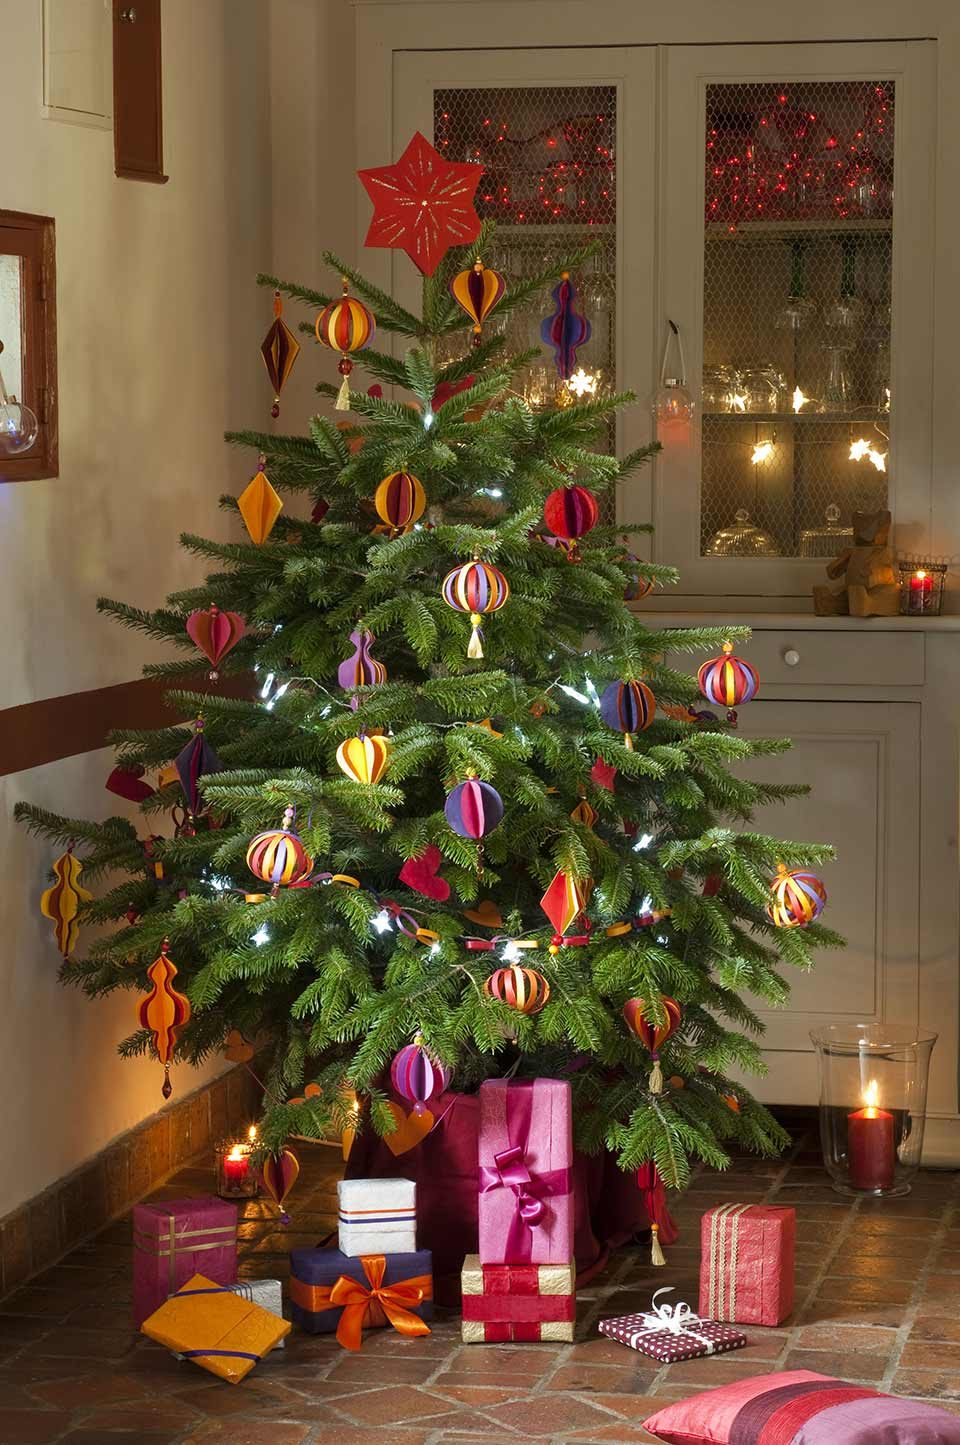 Decoration sapin de noel naturelle - Deco sapin de noel ...